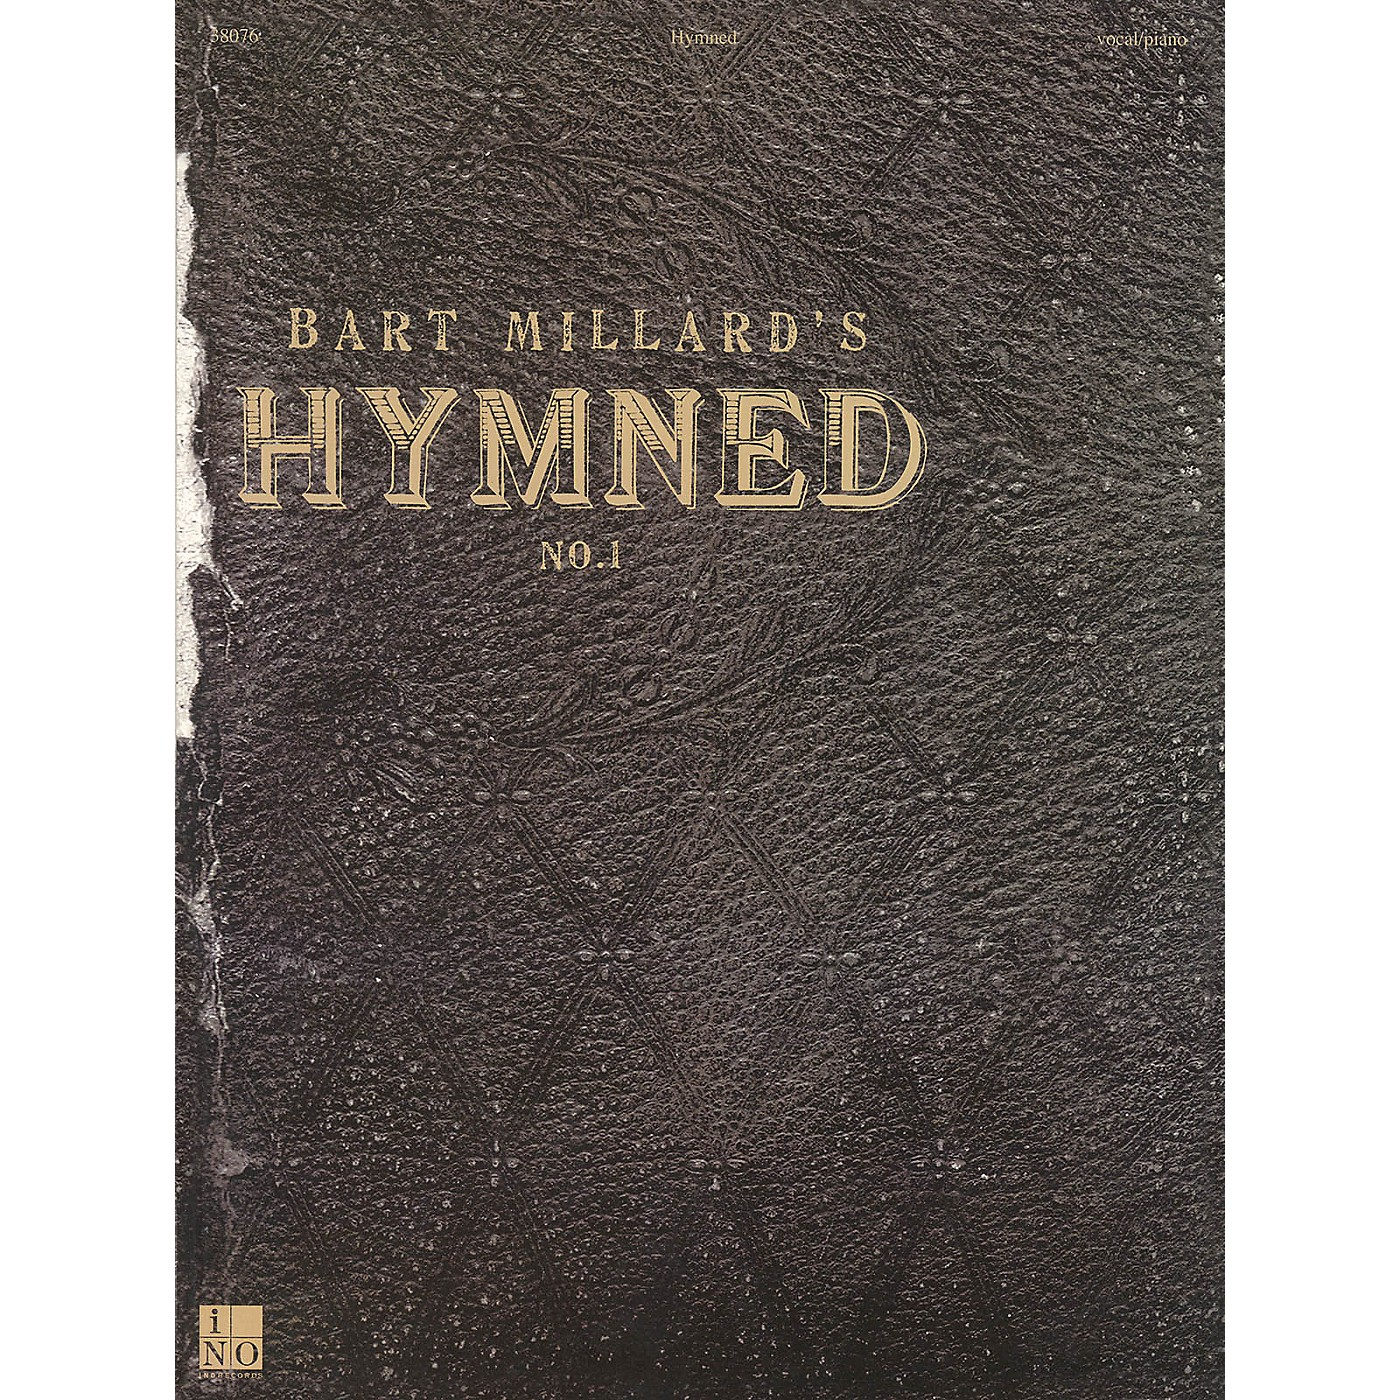 Integrity Music Bart Millard - Hymned No. 1 Integrity Series Softcover Performed by Bart Millard thumbnail